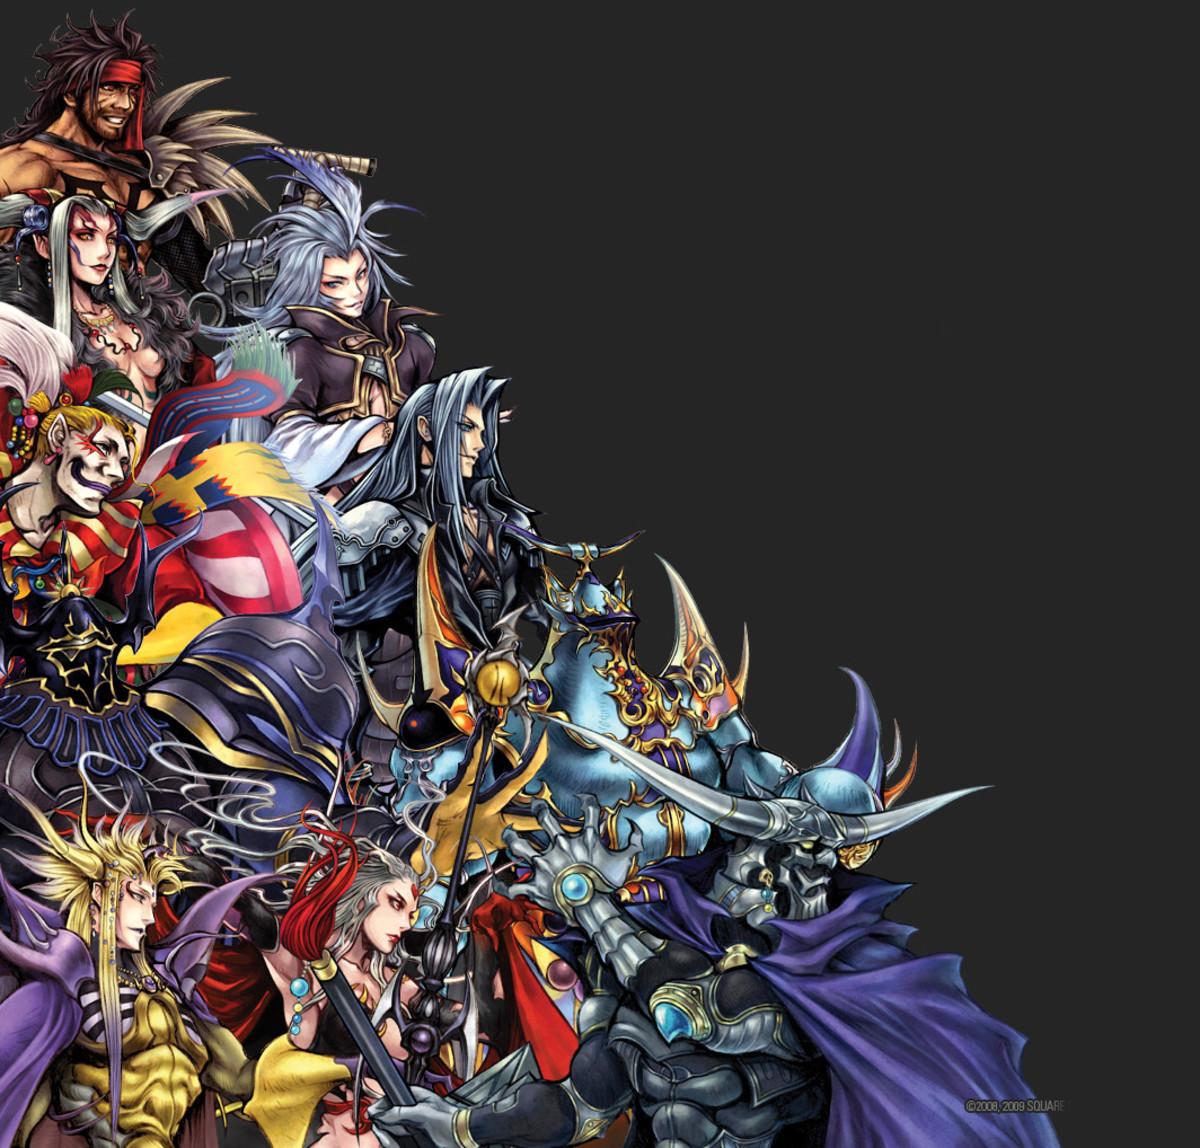 Villains from Final Fantasy 1-10